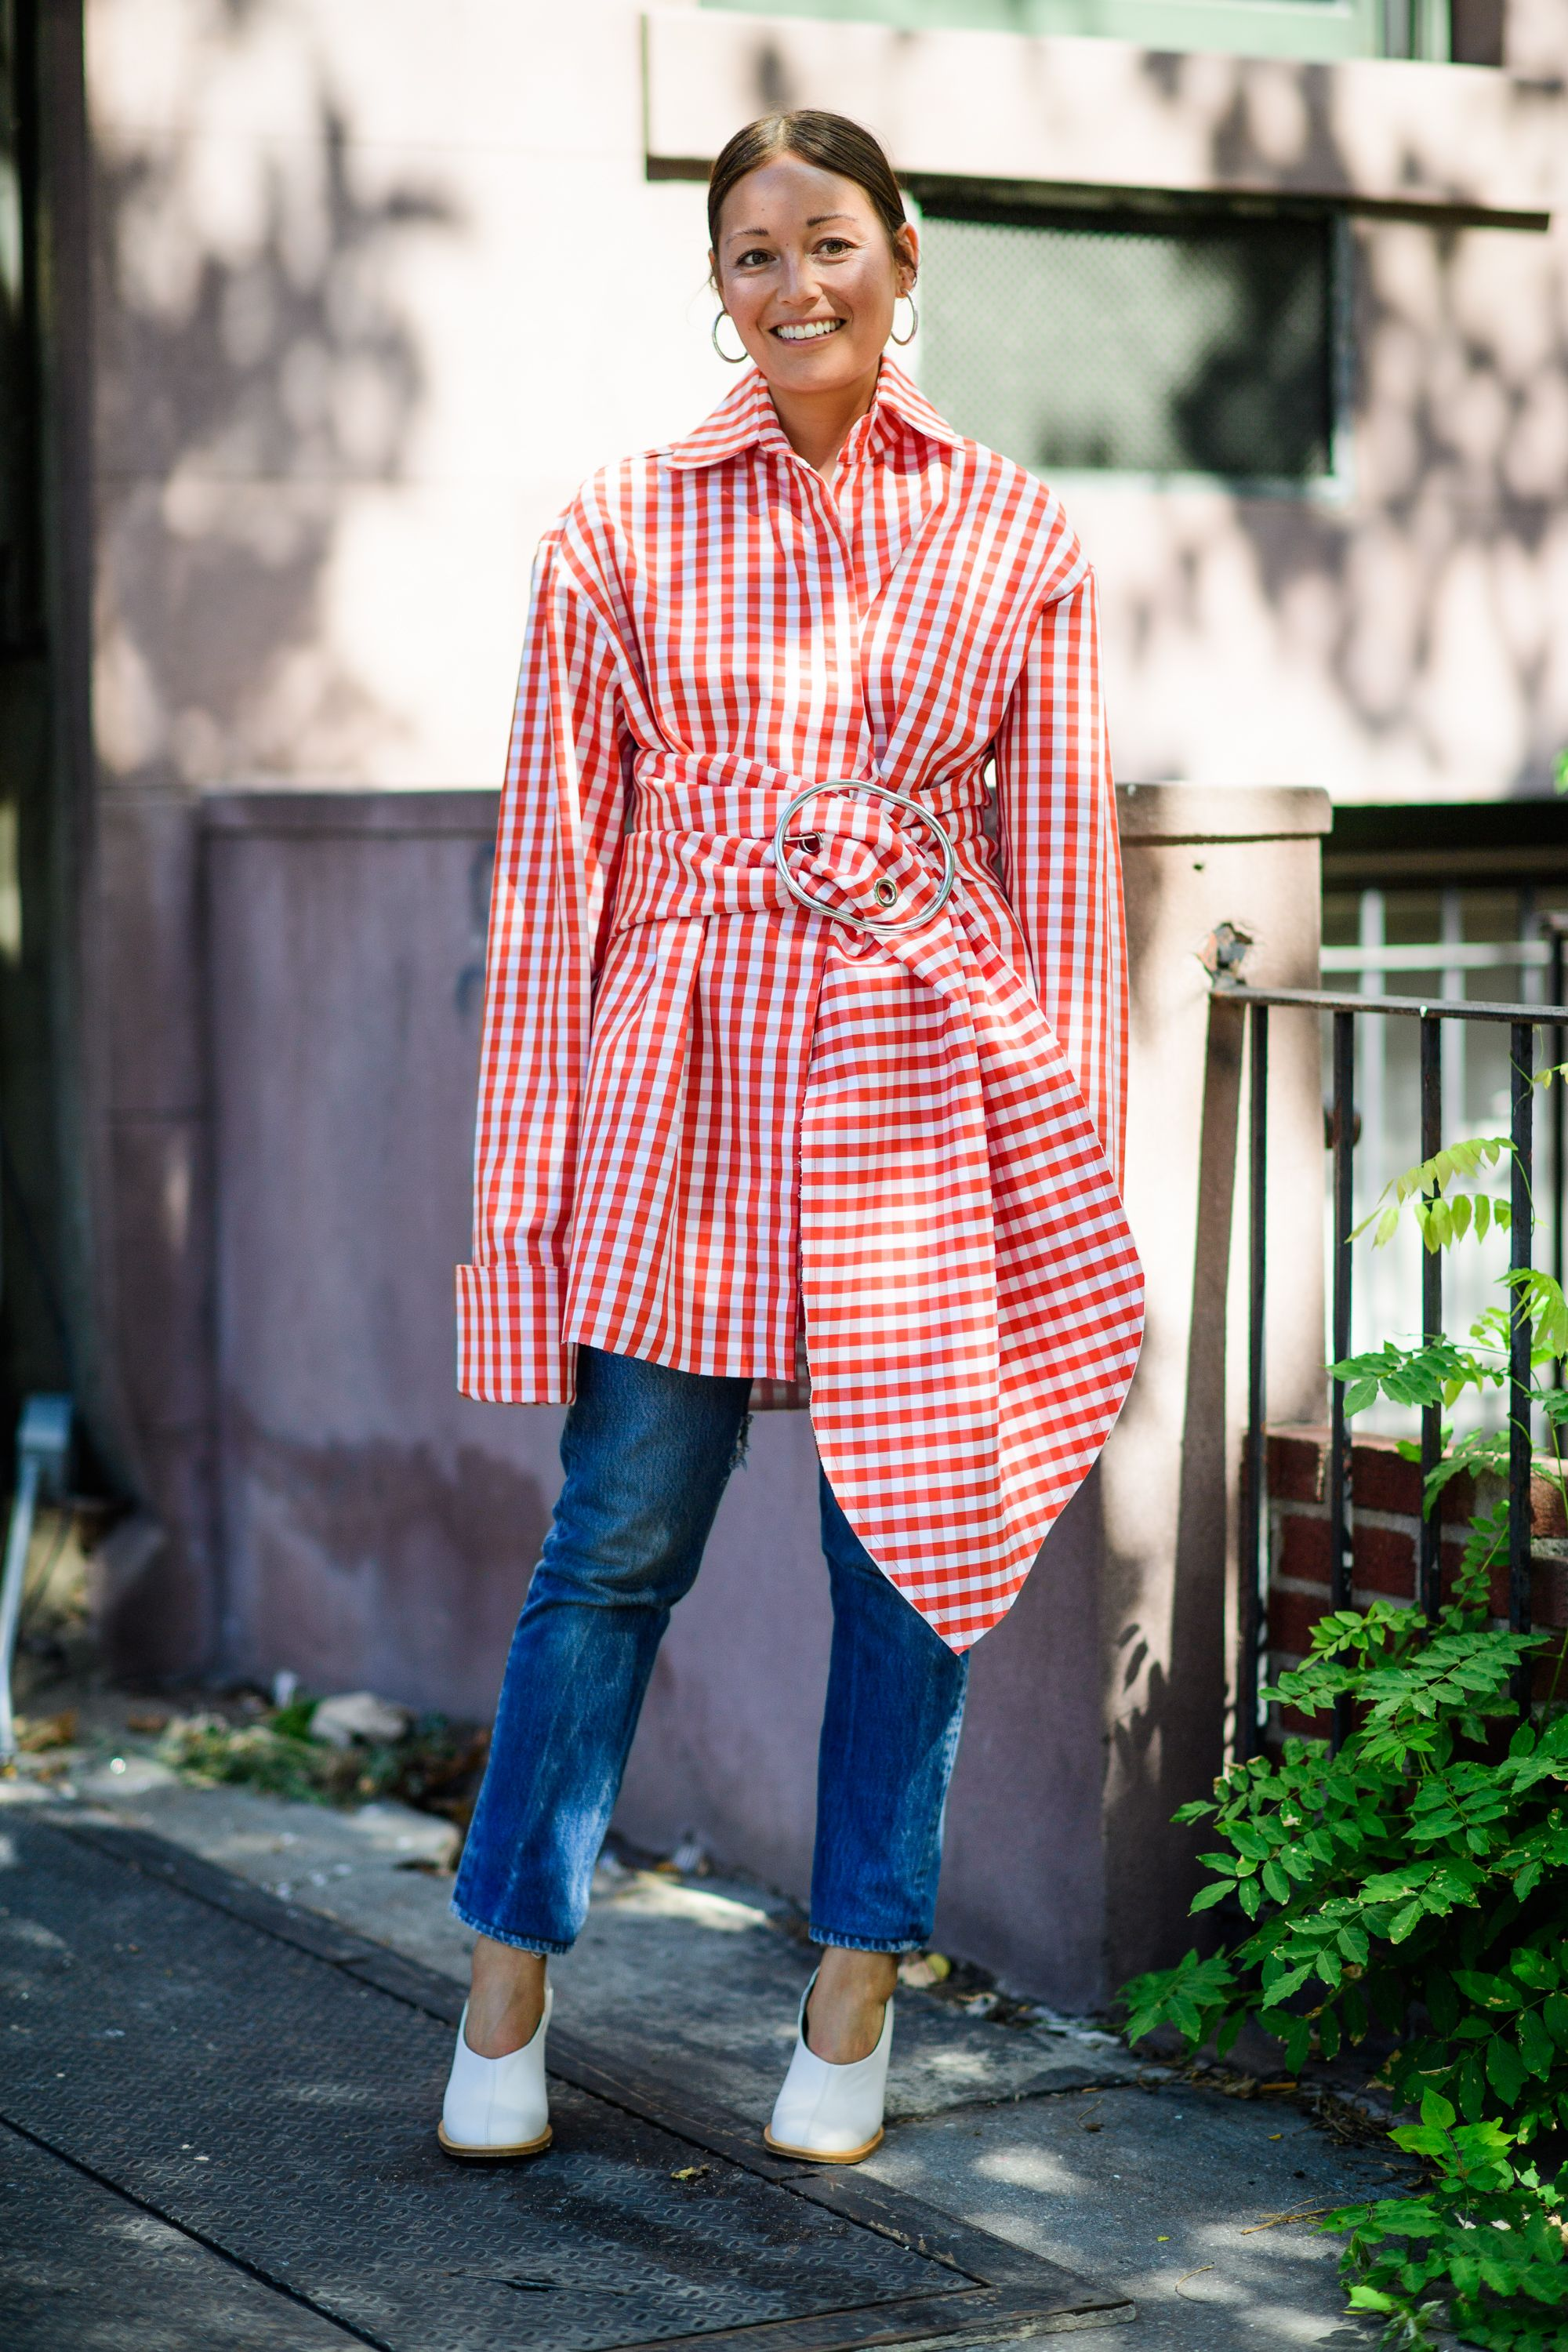 """<p>""""Gingham was once associated with a certain preppy style but has now become much more fashionable thanks to J.W.Anderson, Rosie Assoulin, and Altuzarra,"""" says Aiken. """"It's our alternative and welcomed second option to stripes, a perennial summer print."""" Elyse Walker, fashion director of <a href=""""http://www.fwrd.com/"""" data-tracking-id=""""recirc-text-link"""">Forward</a>, agrees. """"<strong data-redactor-tag=""""strong"""" data-verified=""""redactor"""">I am loving anything with gingham or ruffles,</strong>"""" she says. """"<a href=""""http://www.fwrd.com/brand-caroline-constas/1c2dec/"""" data-tracking-id=""""recirc-text-link"""">Caroline Constas</a> and <a href=""""http://www.fwrd.com/brand-johanna-ortiz/d65bda/"""" data-tracking-id=""""recirc-text-link"""">Johanna Ortiz</a> do these so well.<span class=""""redactor-invisible-space"""" data-verified=""""redactor"""" data-redactor-tag=""""span"""" data-redactor-class=""""redactor-invisible-space"""">""""</span></p>"""